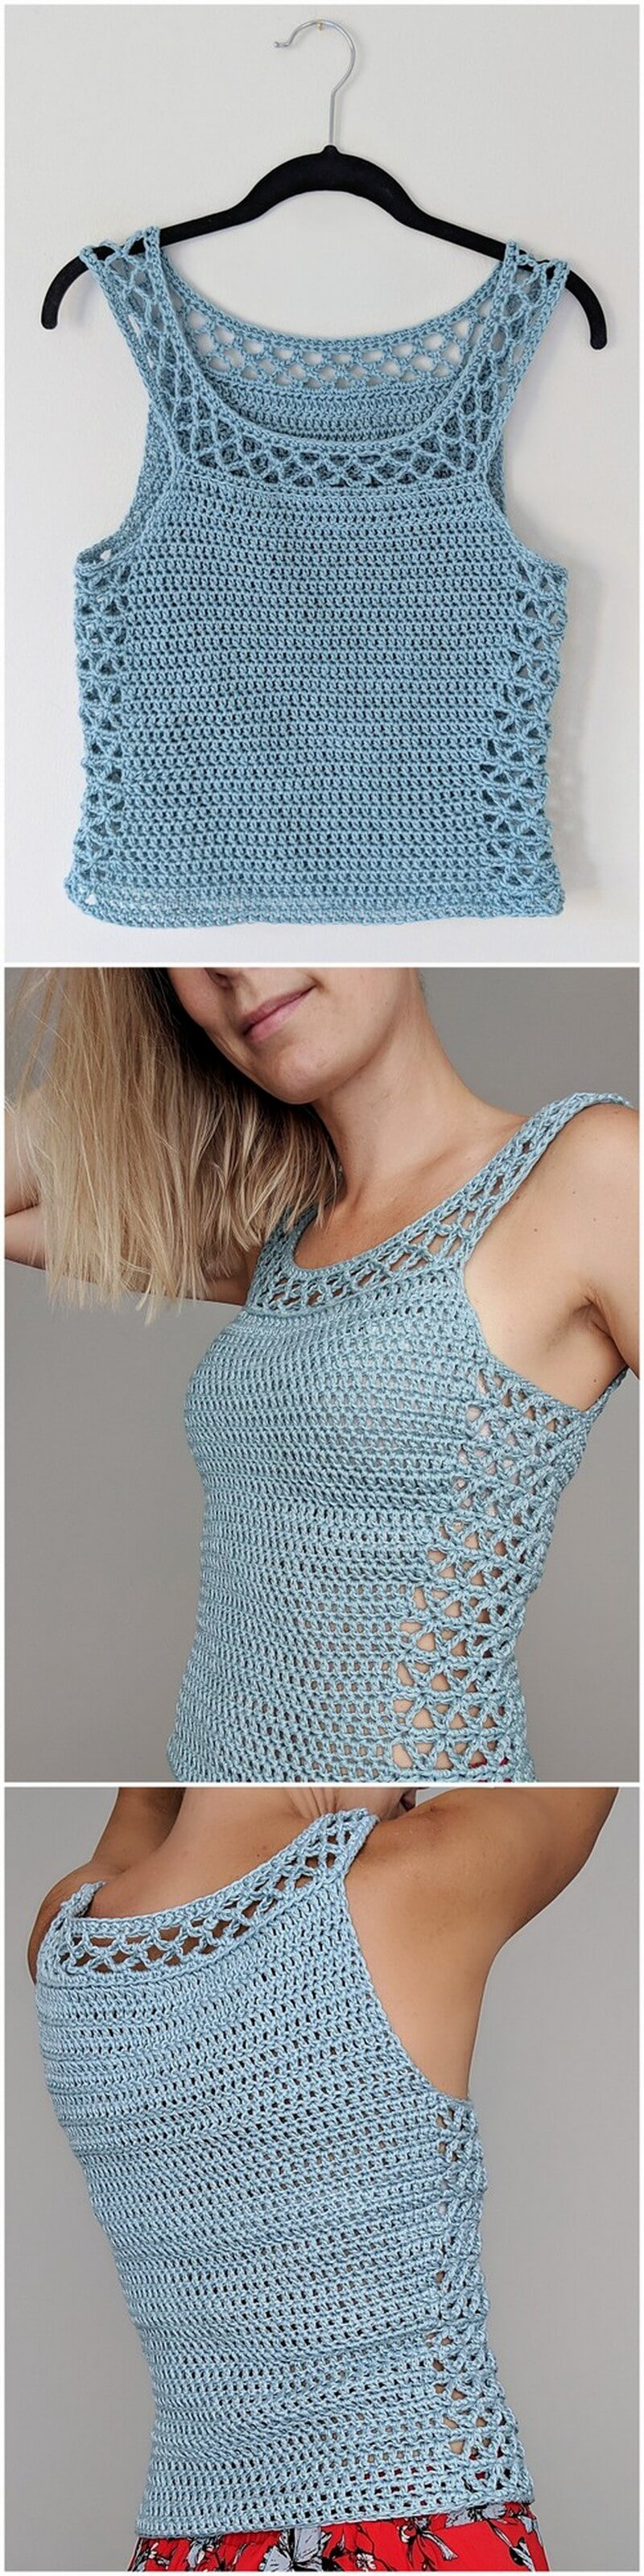 Crochet Top Pattern (31)